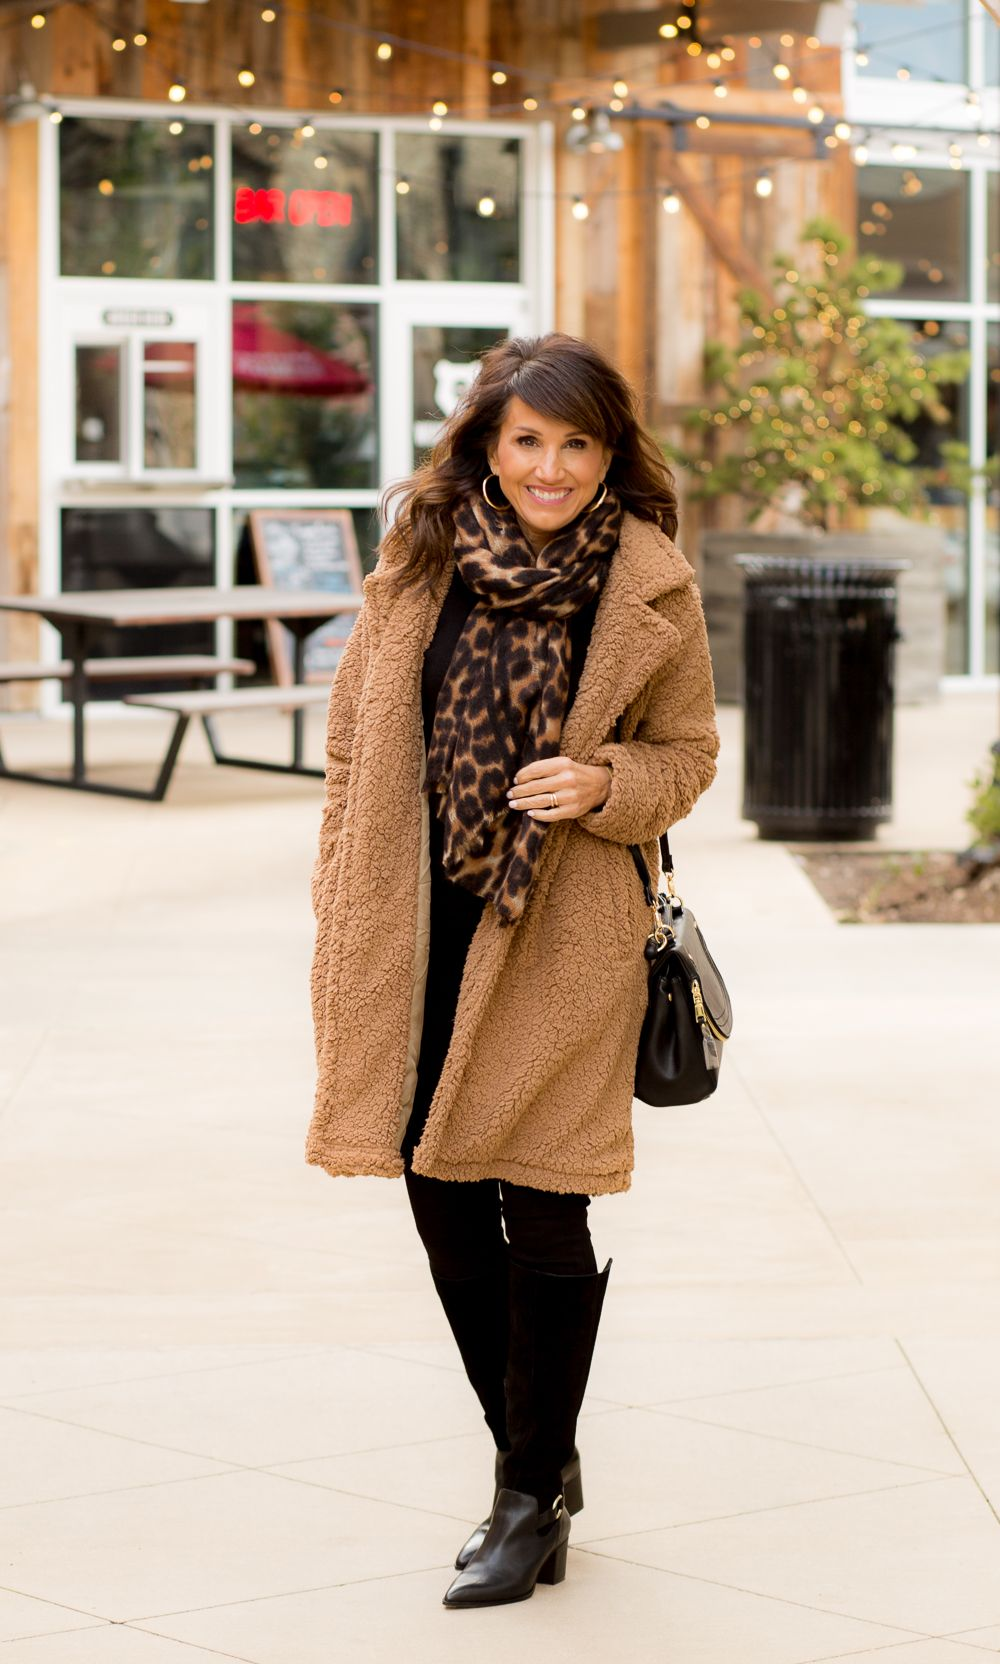 Cozy Winter Fashion from Sole Society | Cozy winter ...